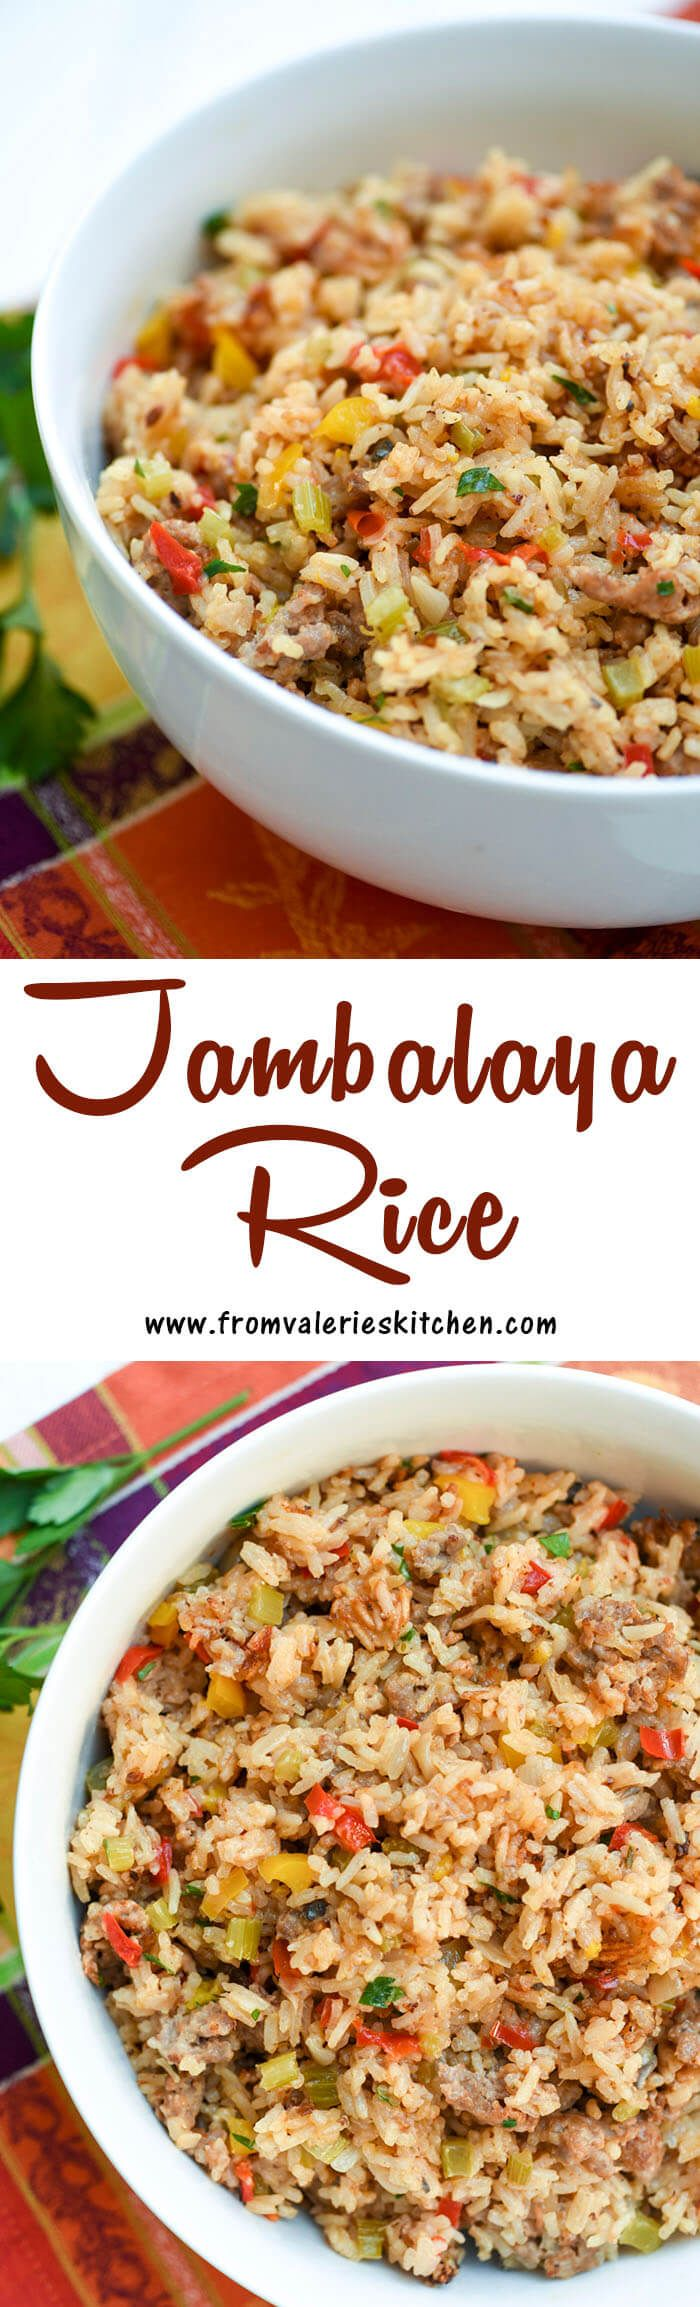 ThisCajun-inspired Jambalaya Rice is filled with sausage, onions, peppers, and garlic to create a satisfying and delicious side dish.